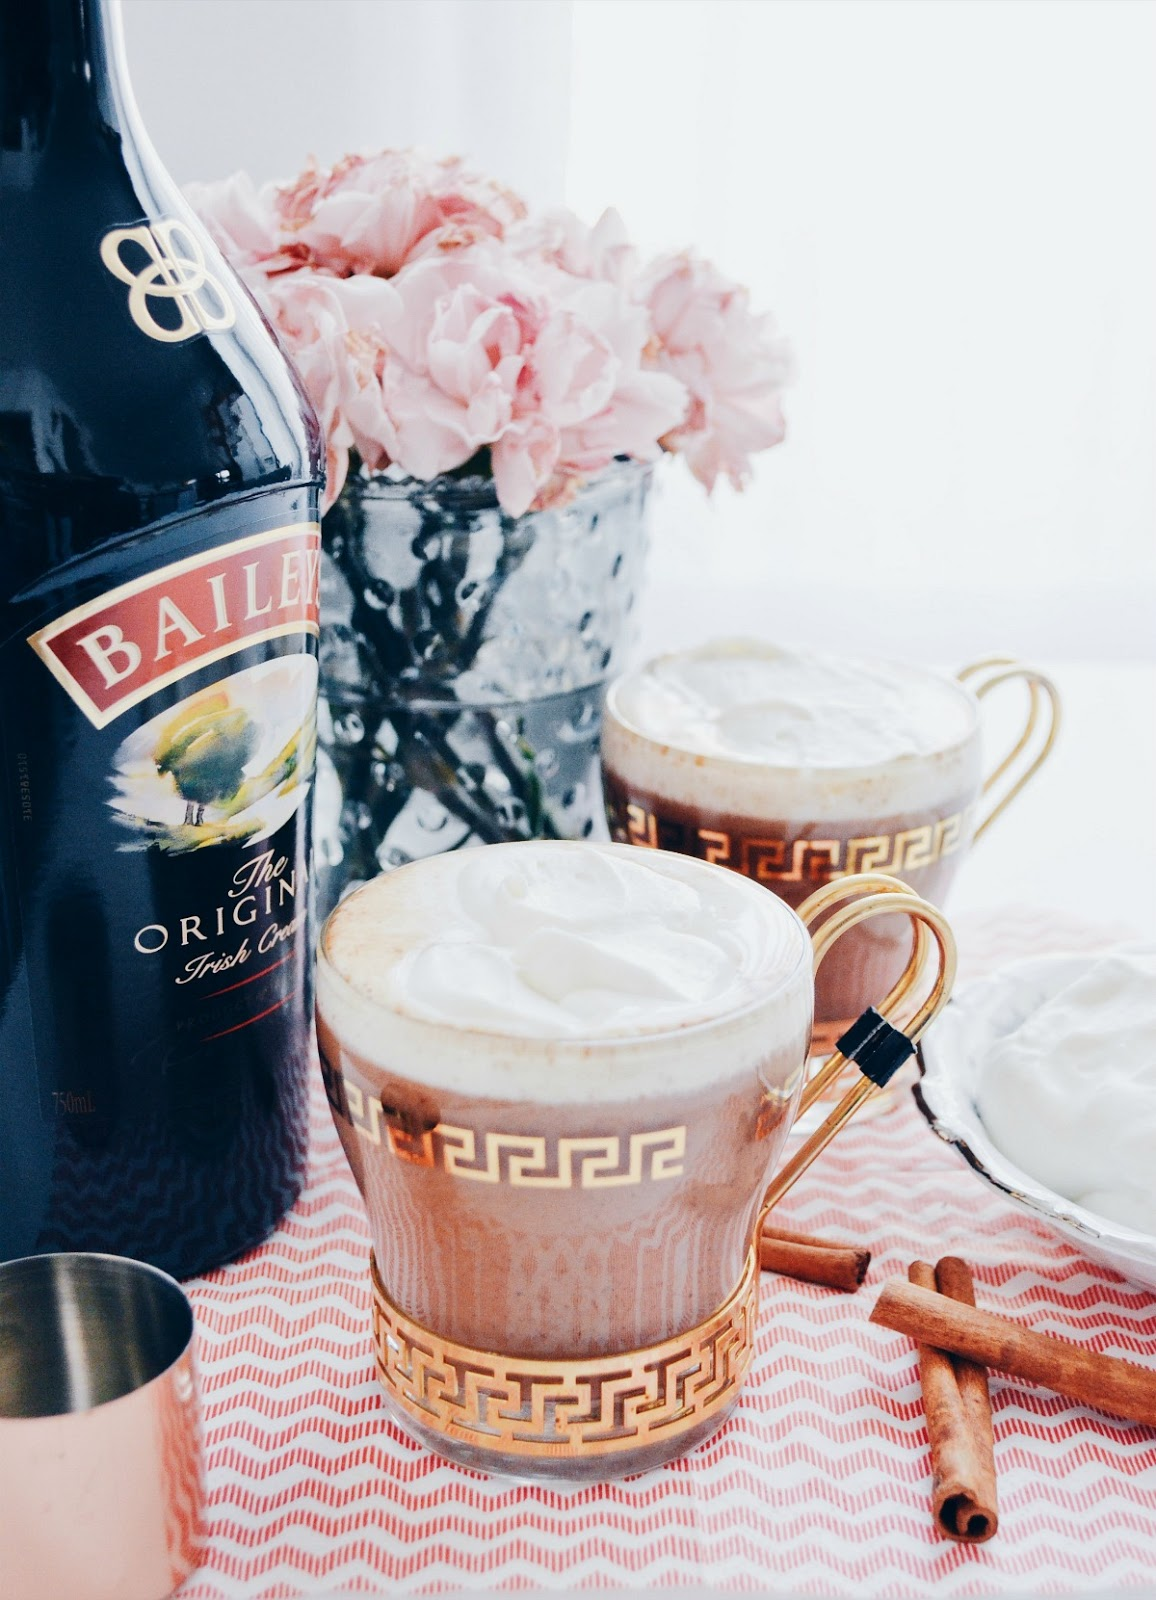 Baileys-original-irish-cream-hot-chocolate-recipe